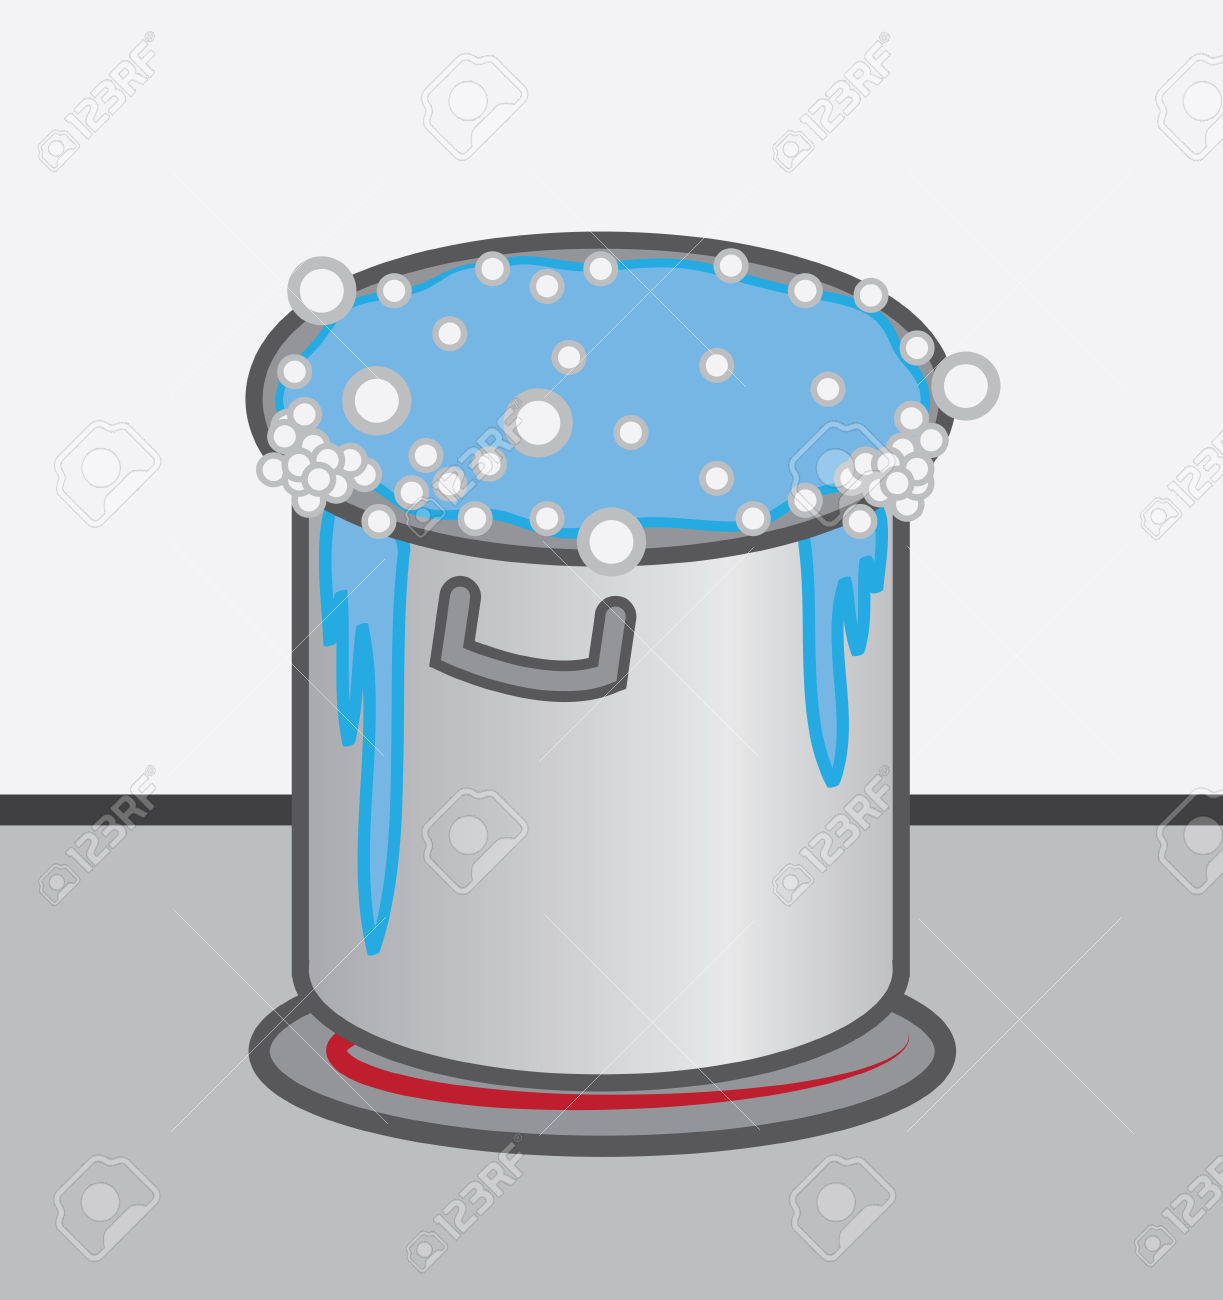 3,355 Boiling Water Stock Vector Illustration And Royalty Free.